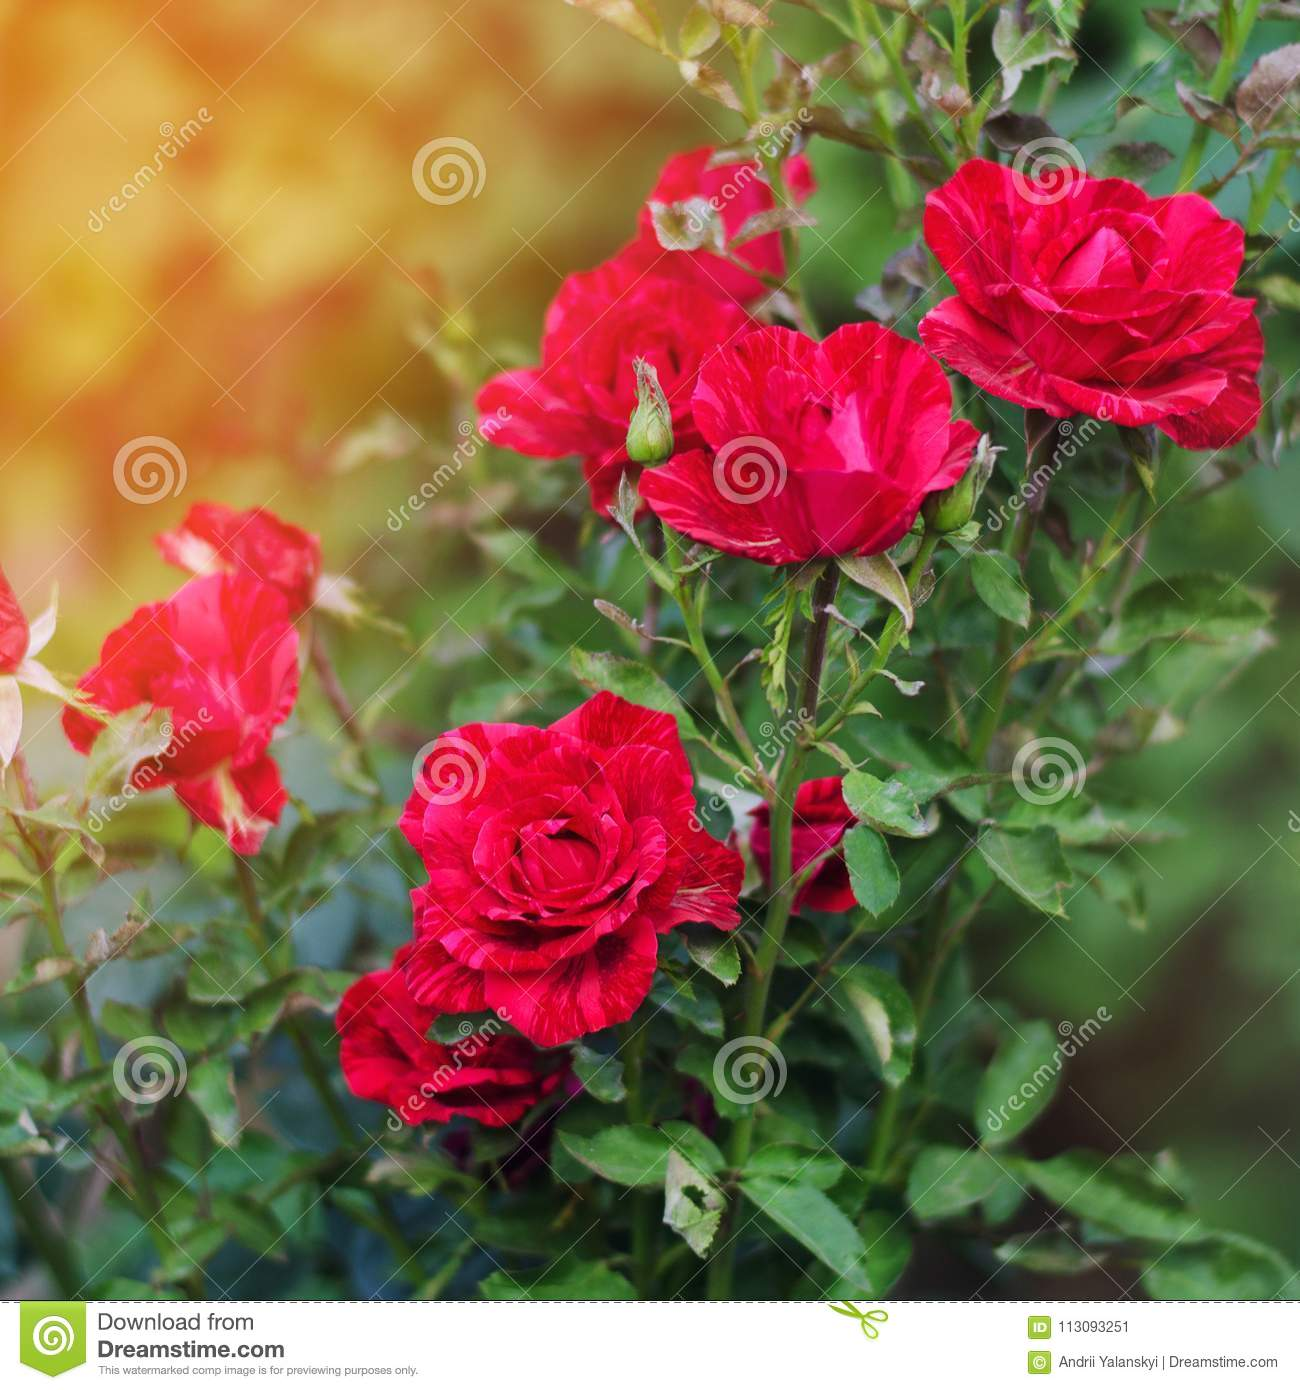 Download Beautiful Red Roses In The Garden Nature Wallpaper Flowers Bush Of